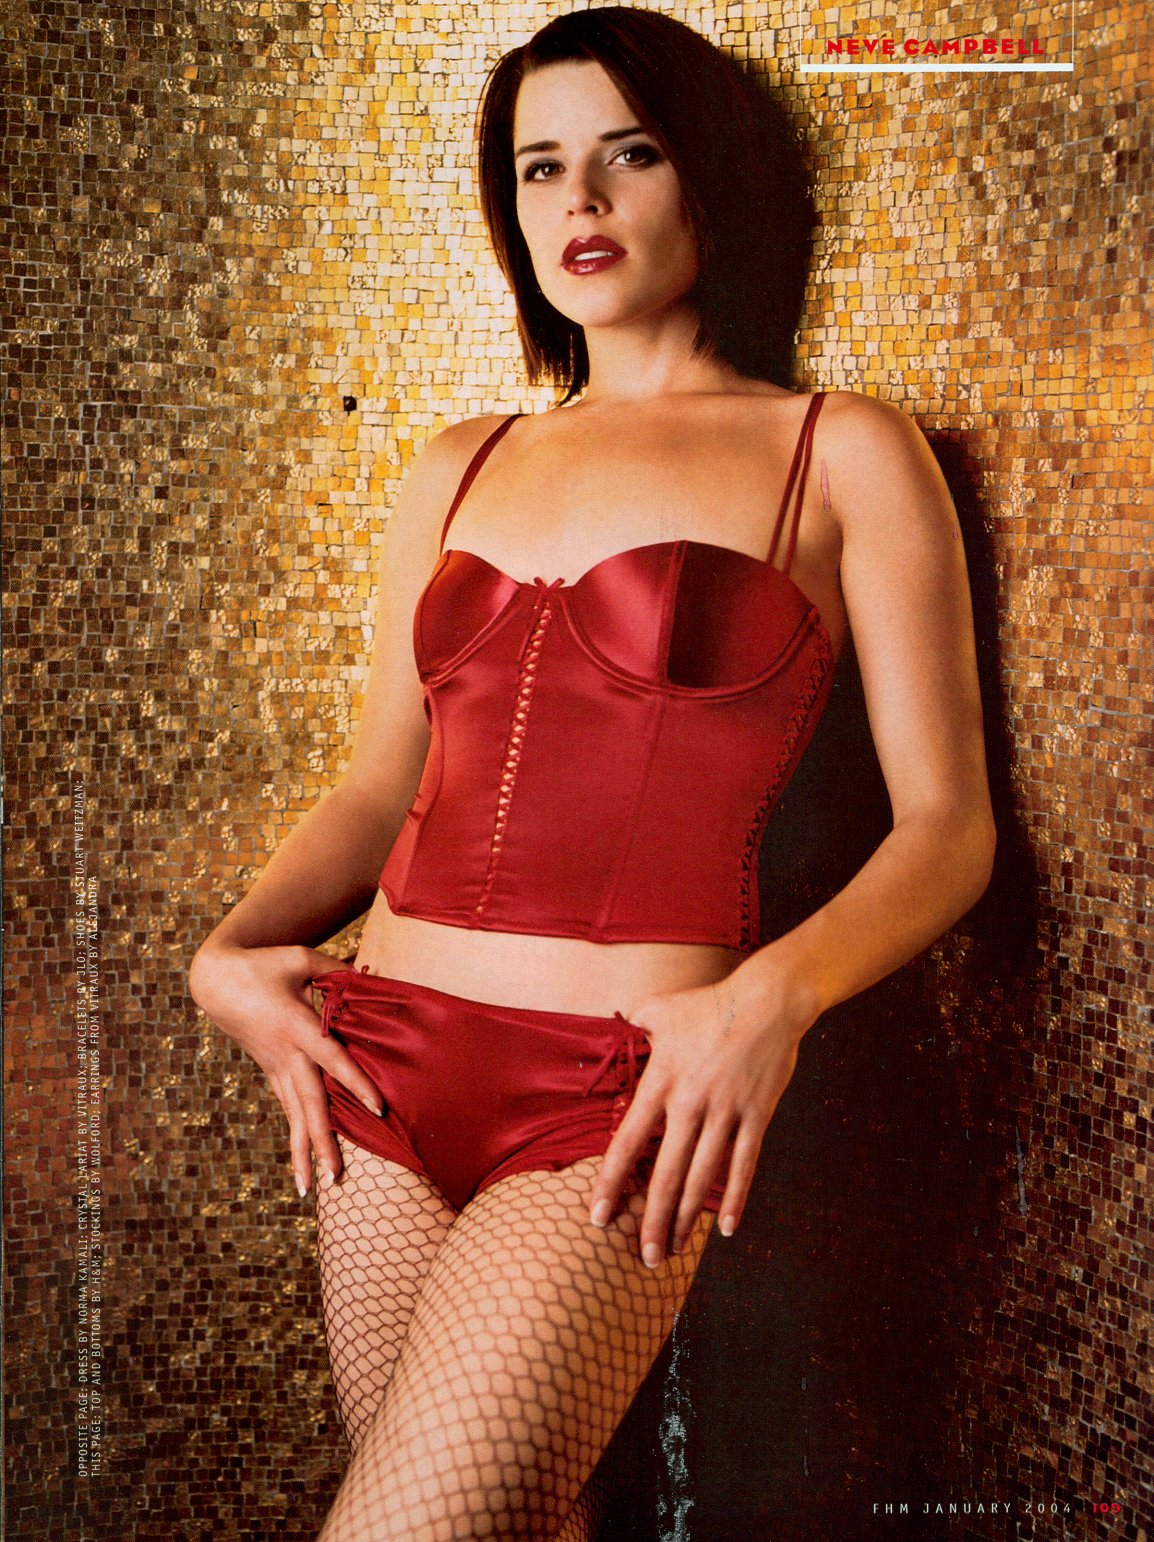 Female Celebrity Portraits] Actress: Neve Campbell